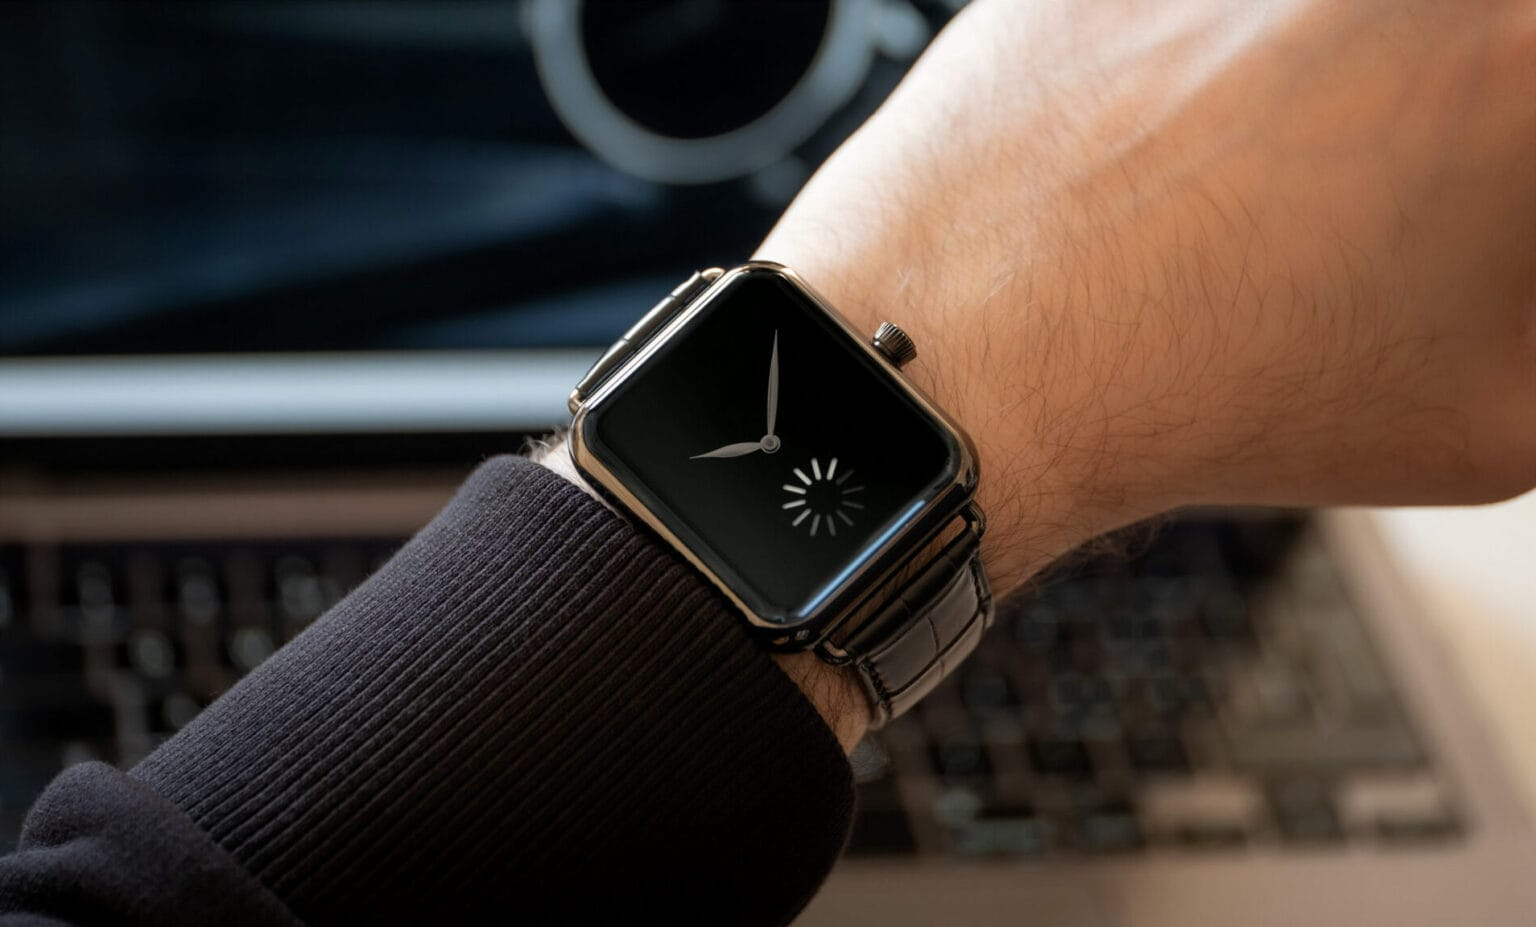 H. Moser & Cie.'s $30,800 Apple Watch spoof: What better way to thumb your nose at Apple Watch wearers?